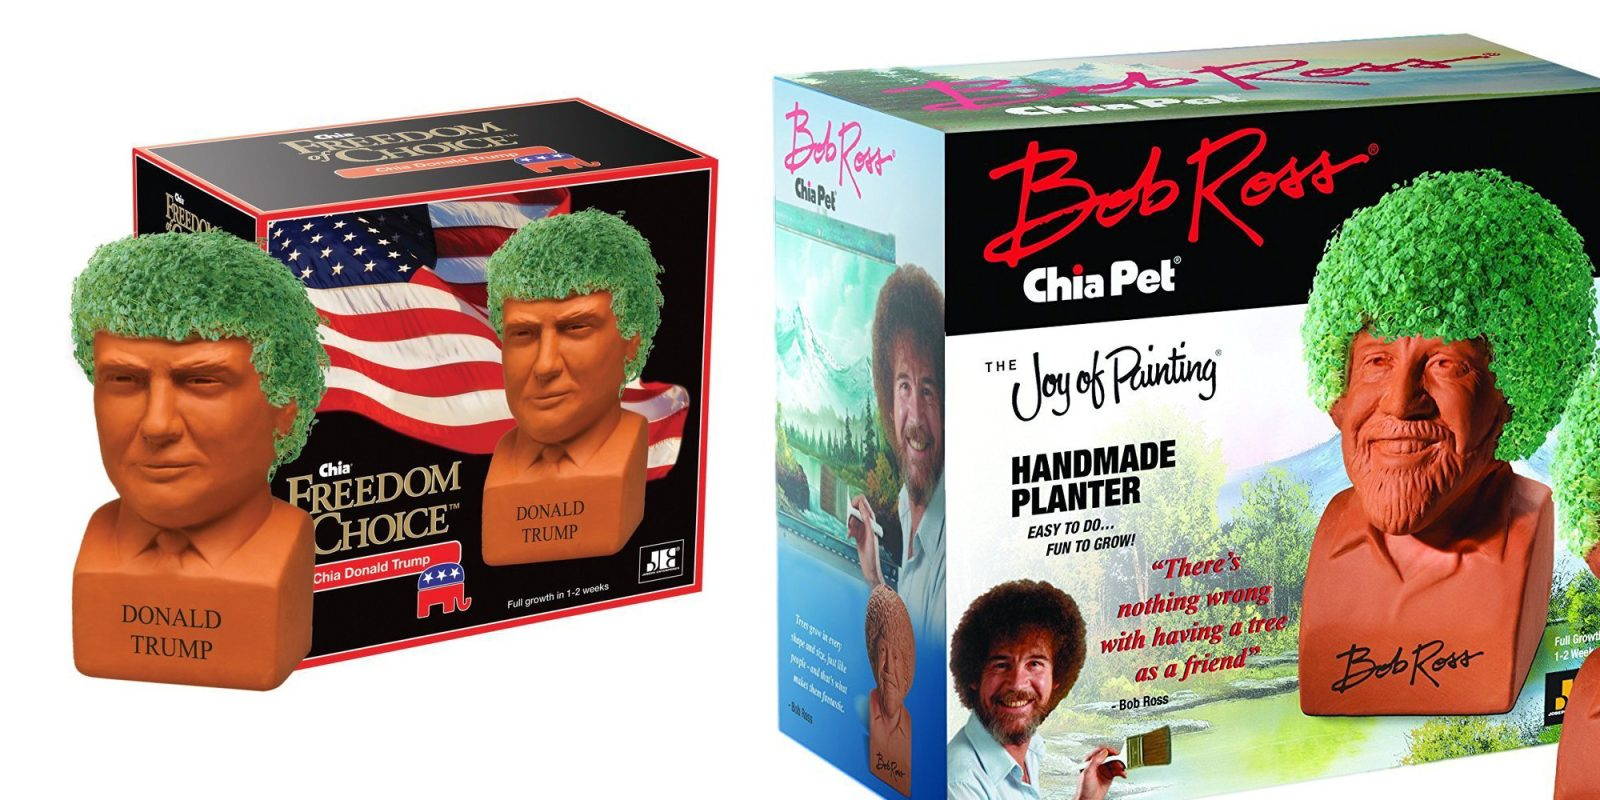 Bring Home Chia Pet Donald Trump For Just 15 Prime Shipped More